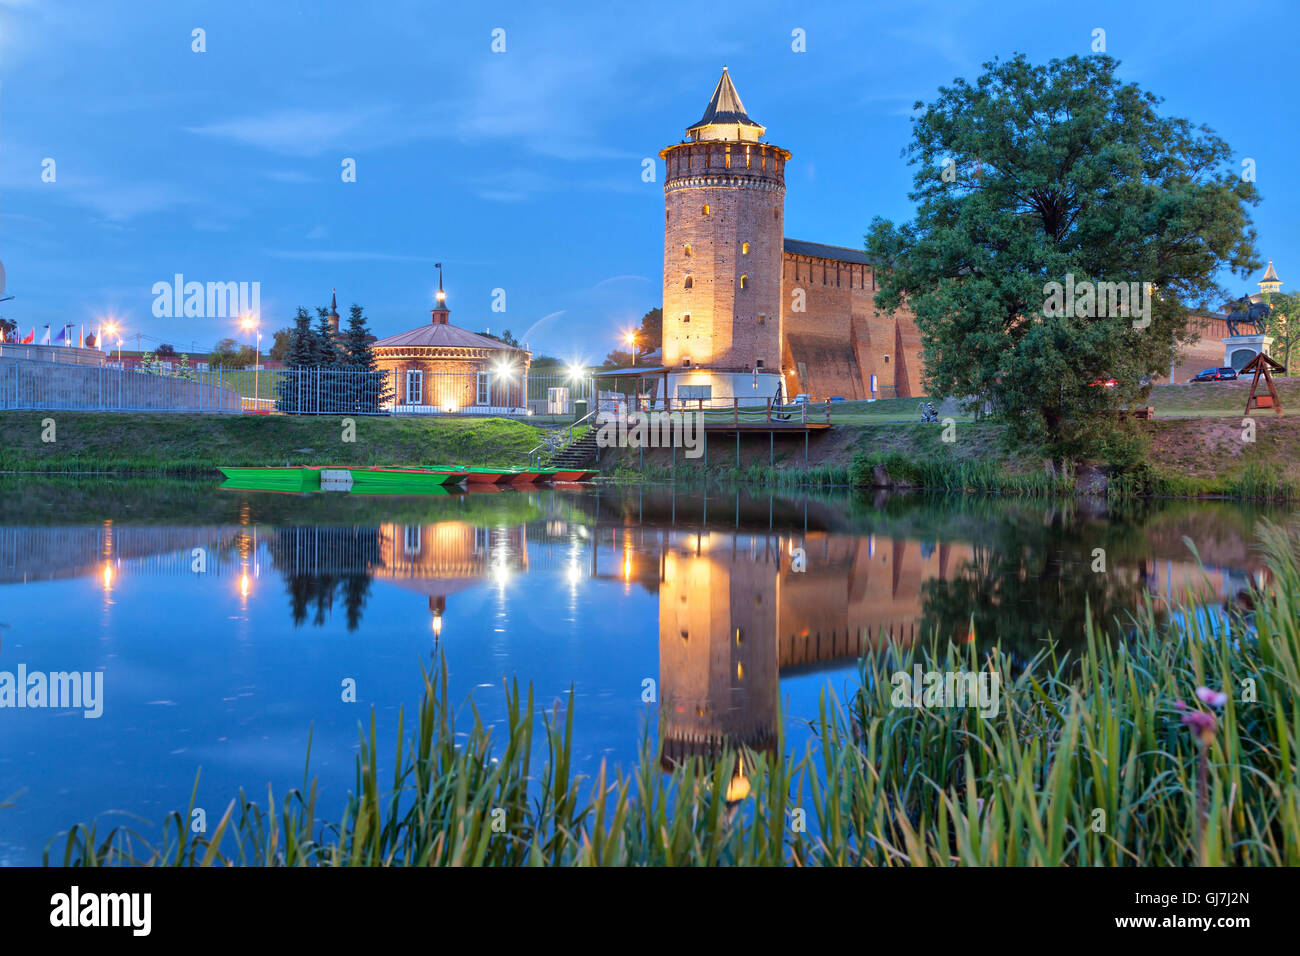 Tower an wall of Kolomna kremlin reflecting in water in the evening, Kolomna, Moscow region, Russia - Stock Image